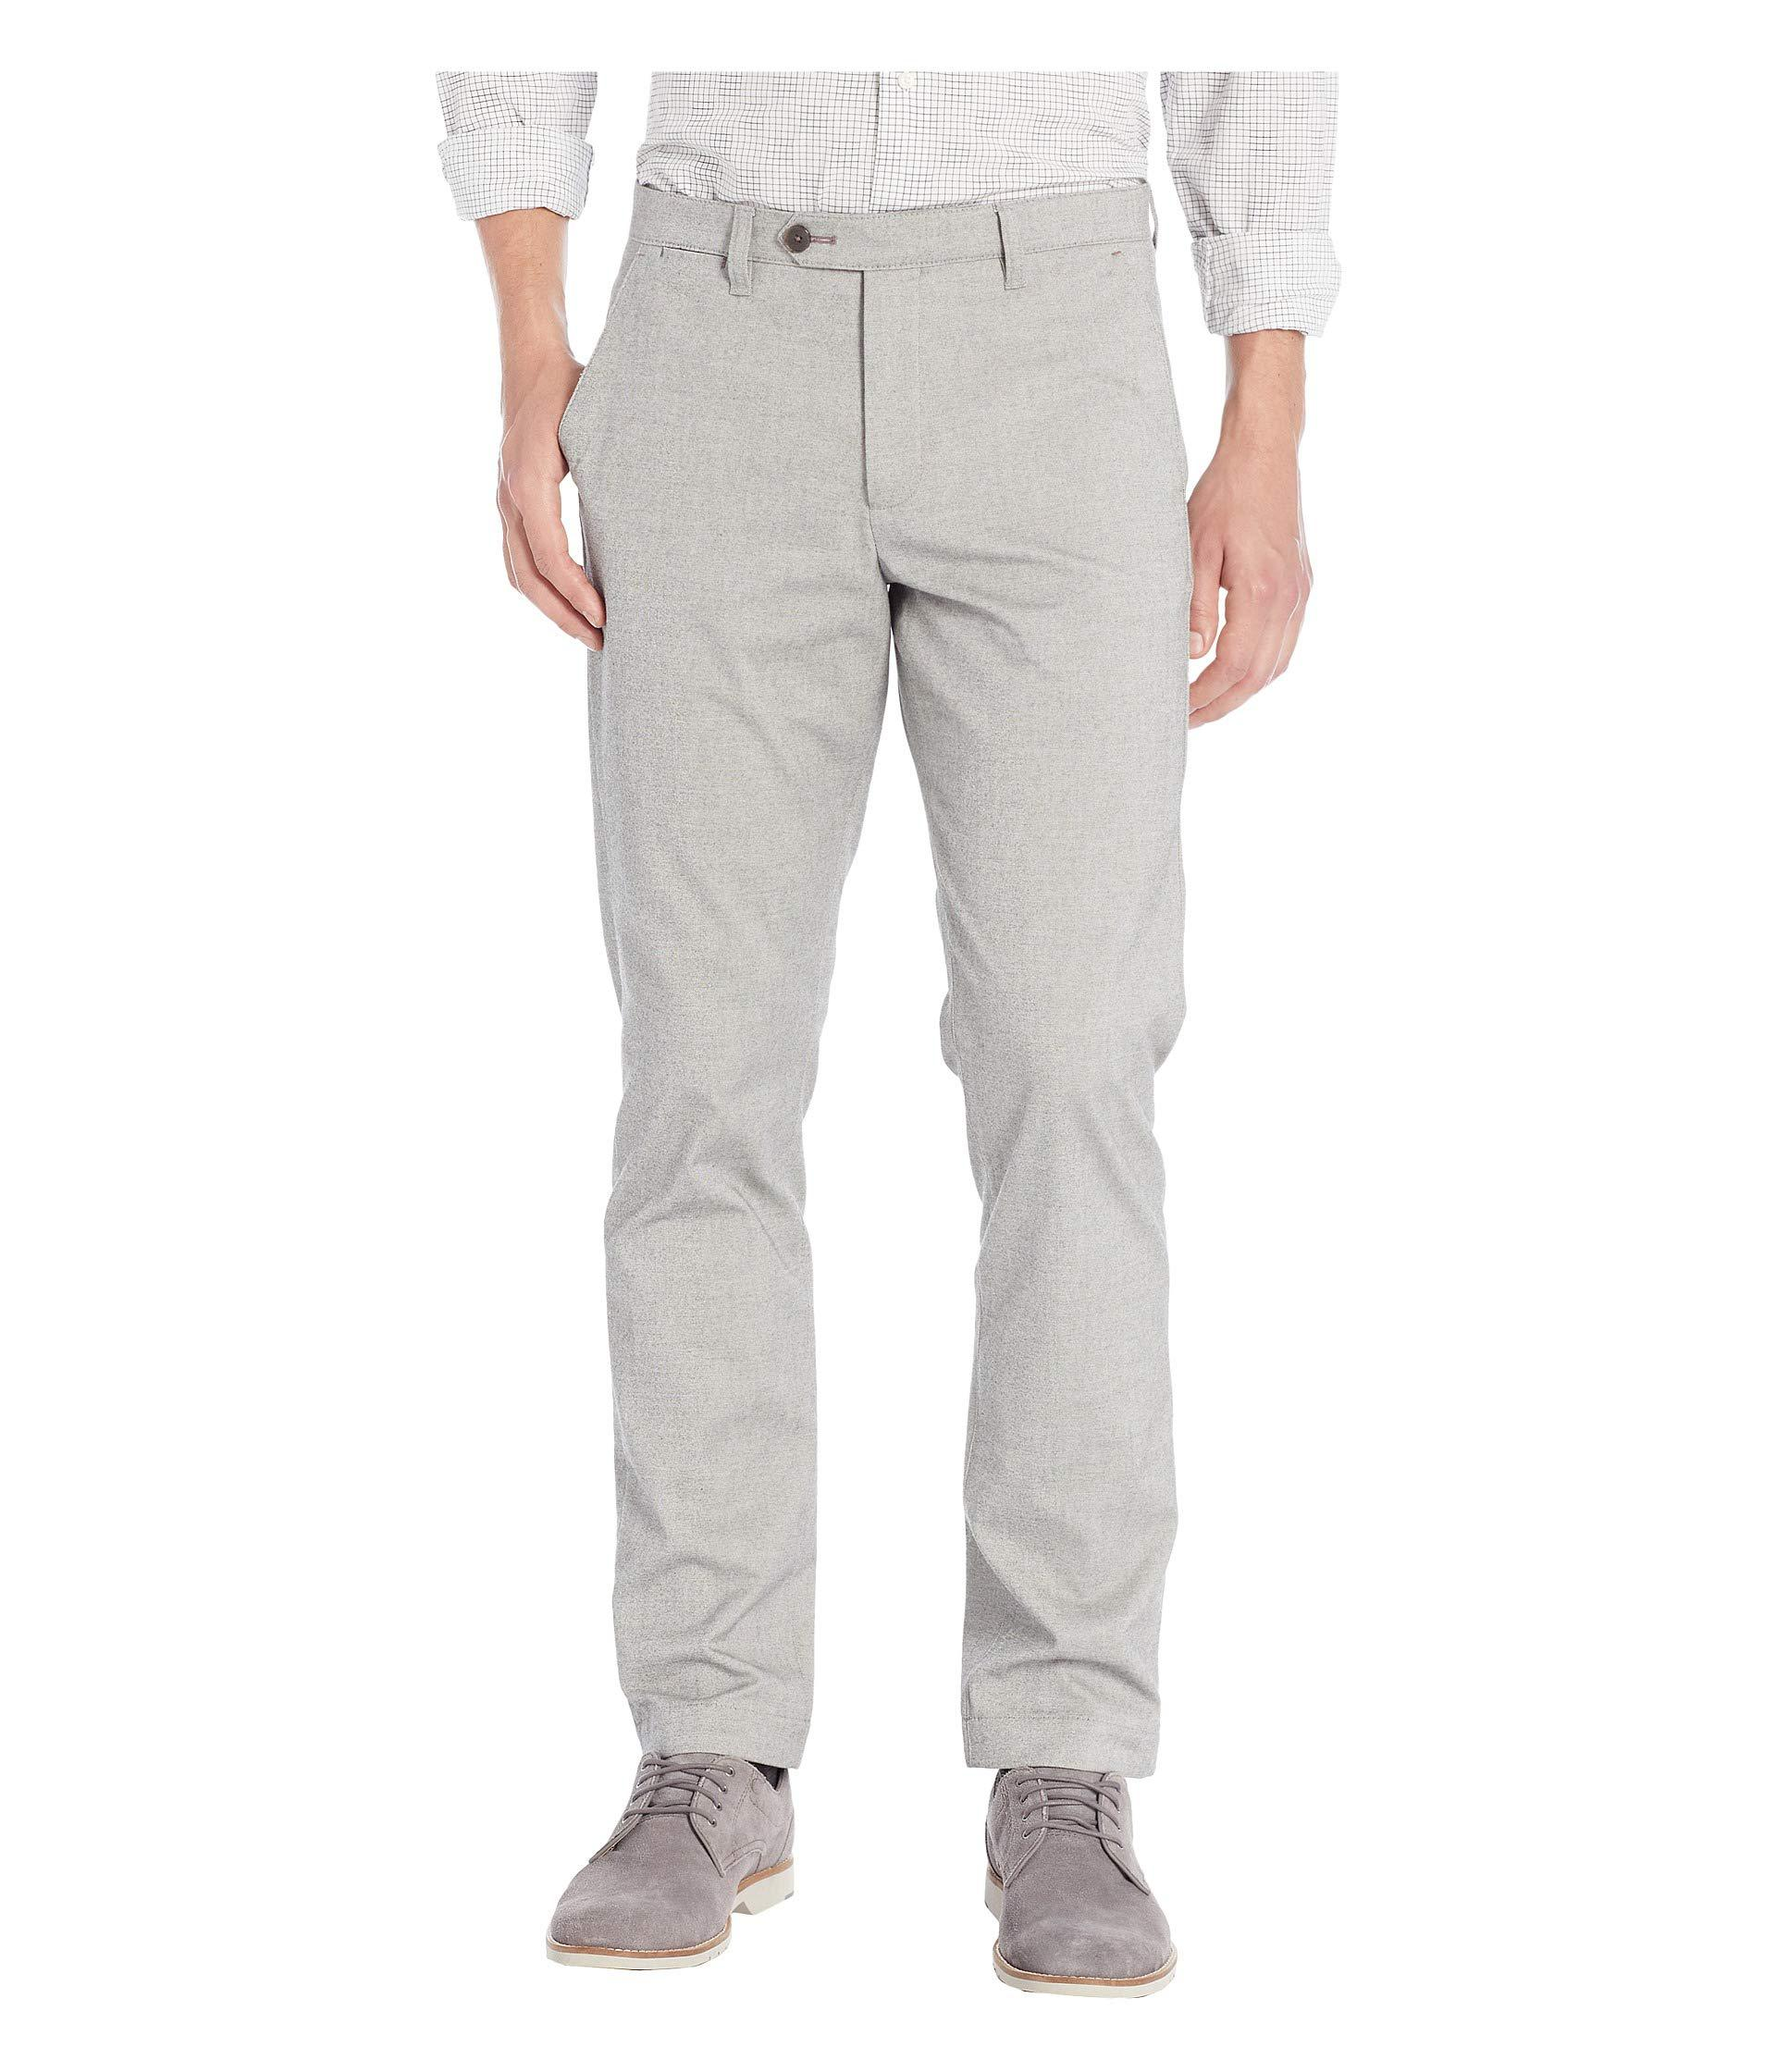 a4ced595afa4 Lyst - Ted Baker Volvek Mini Design Classic Fit Trousers (grey ...